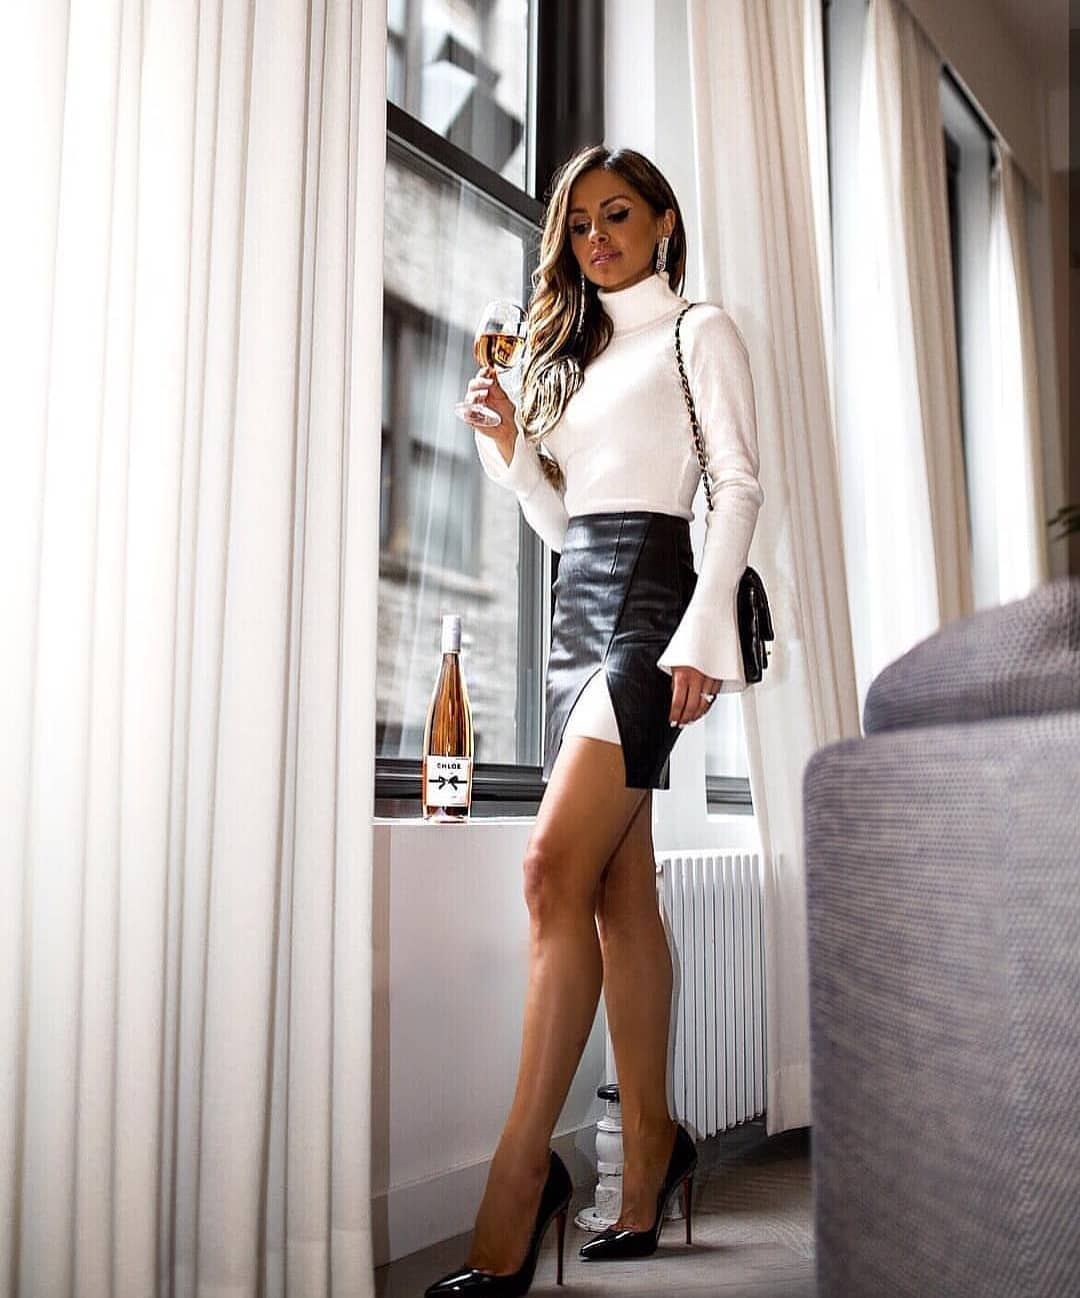 White Turtleneck With Bell Sleeves And Black Leather Mini Skirt For Spring 2019